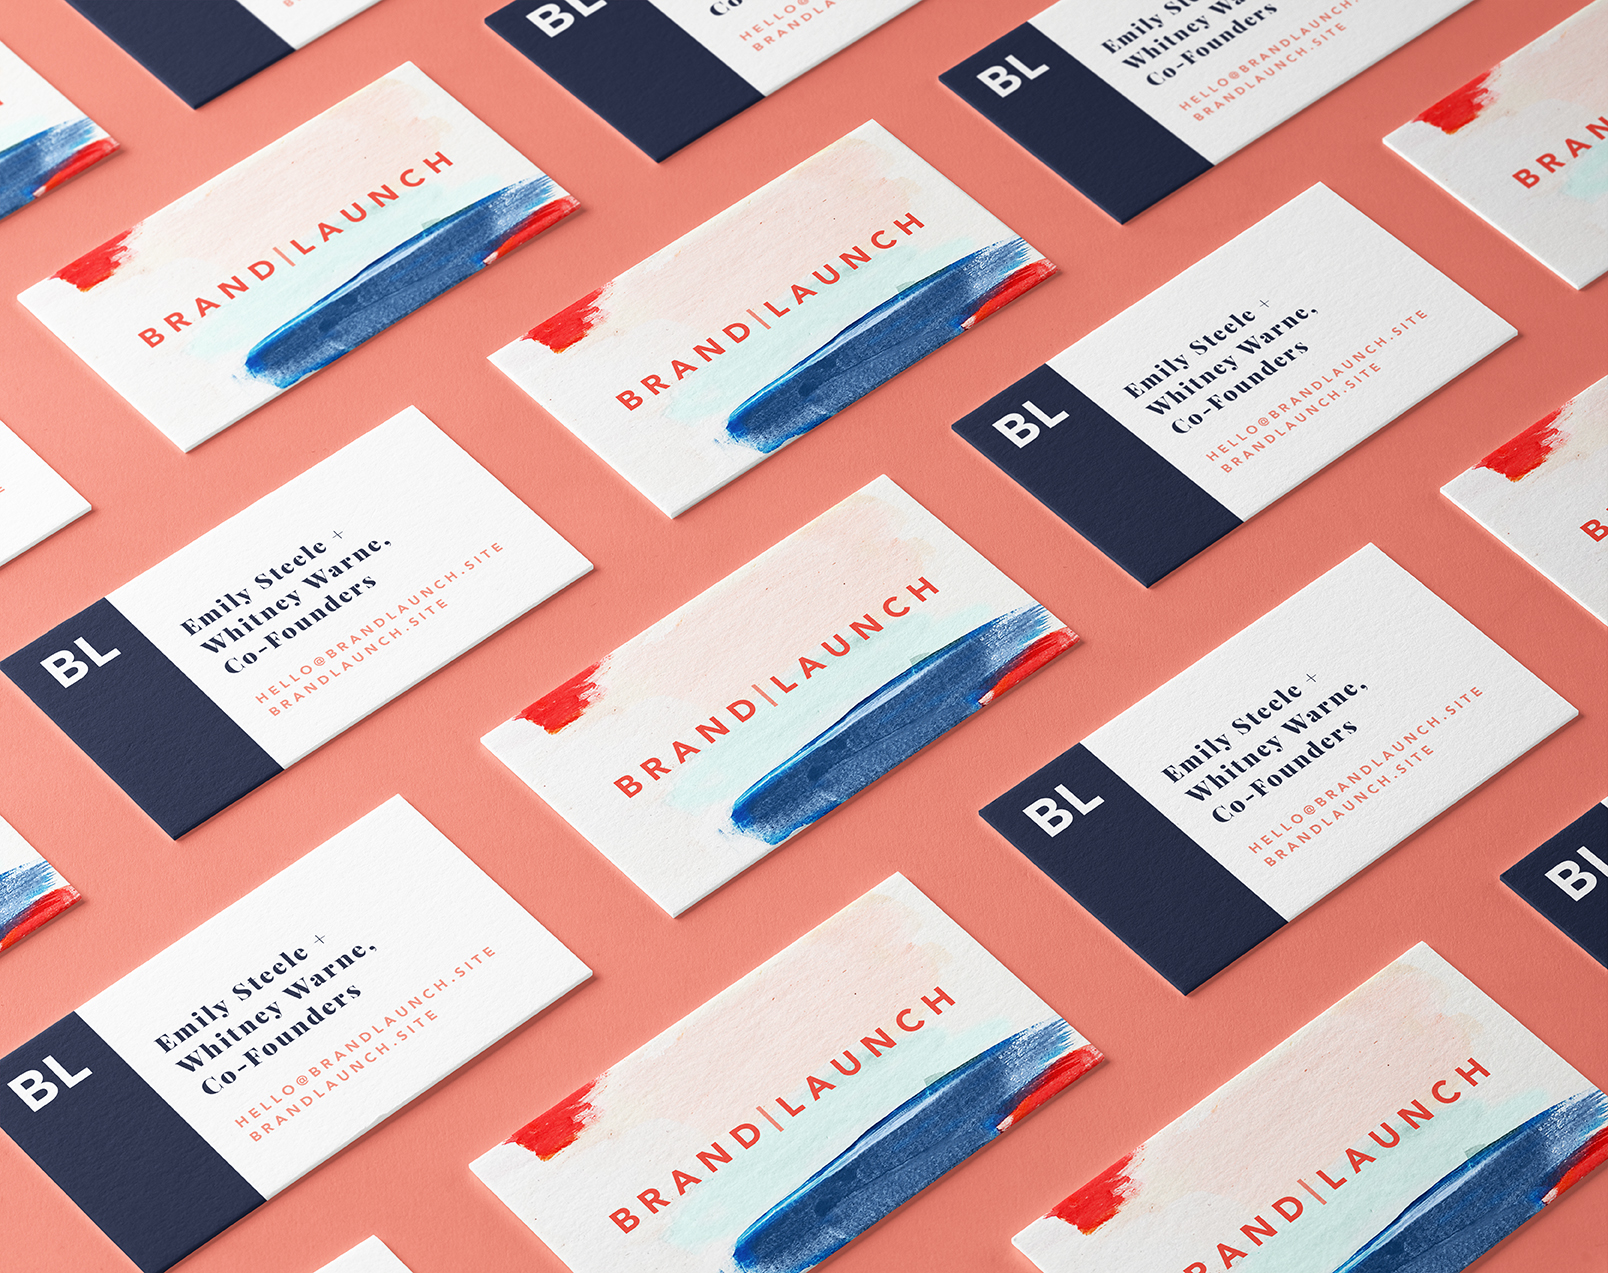 Business-Card-Branding-Mockup-4.jpg